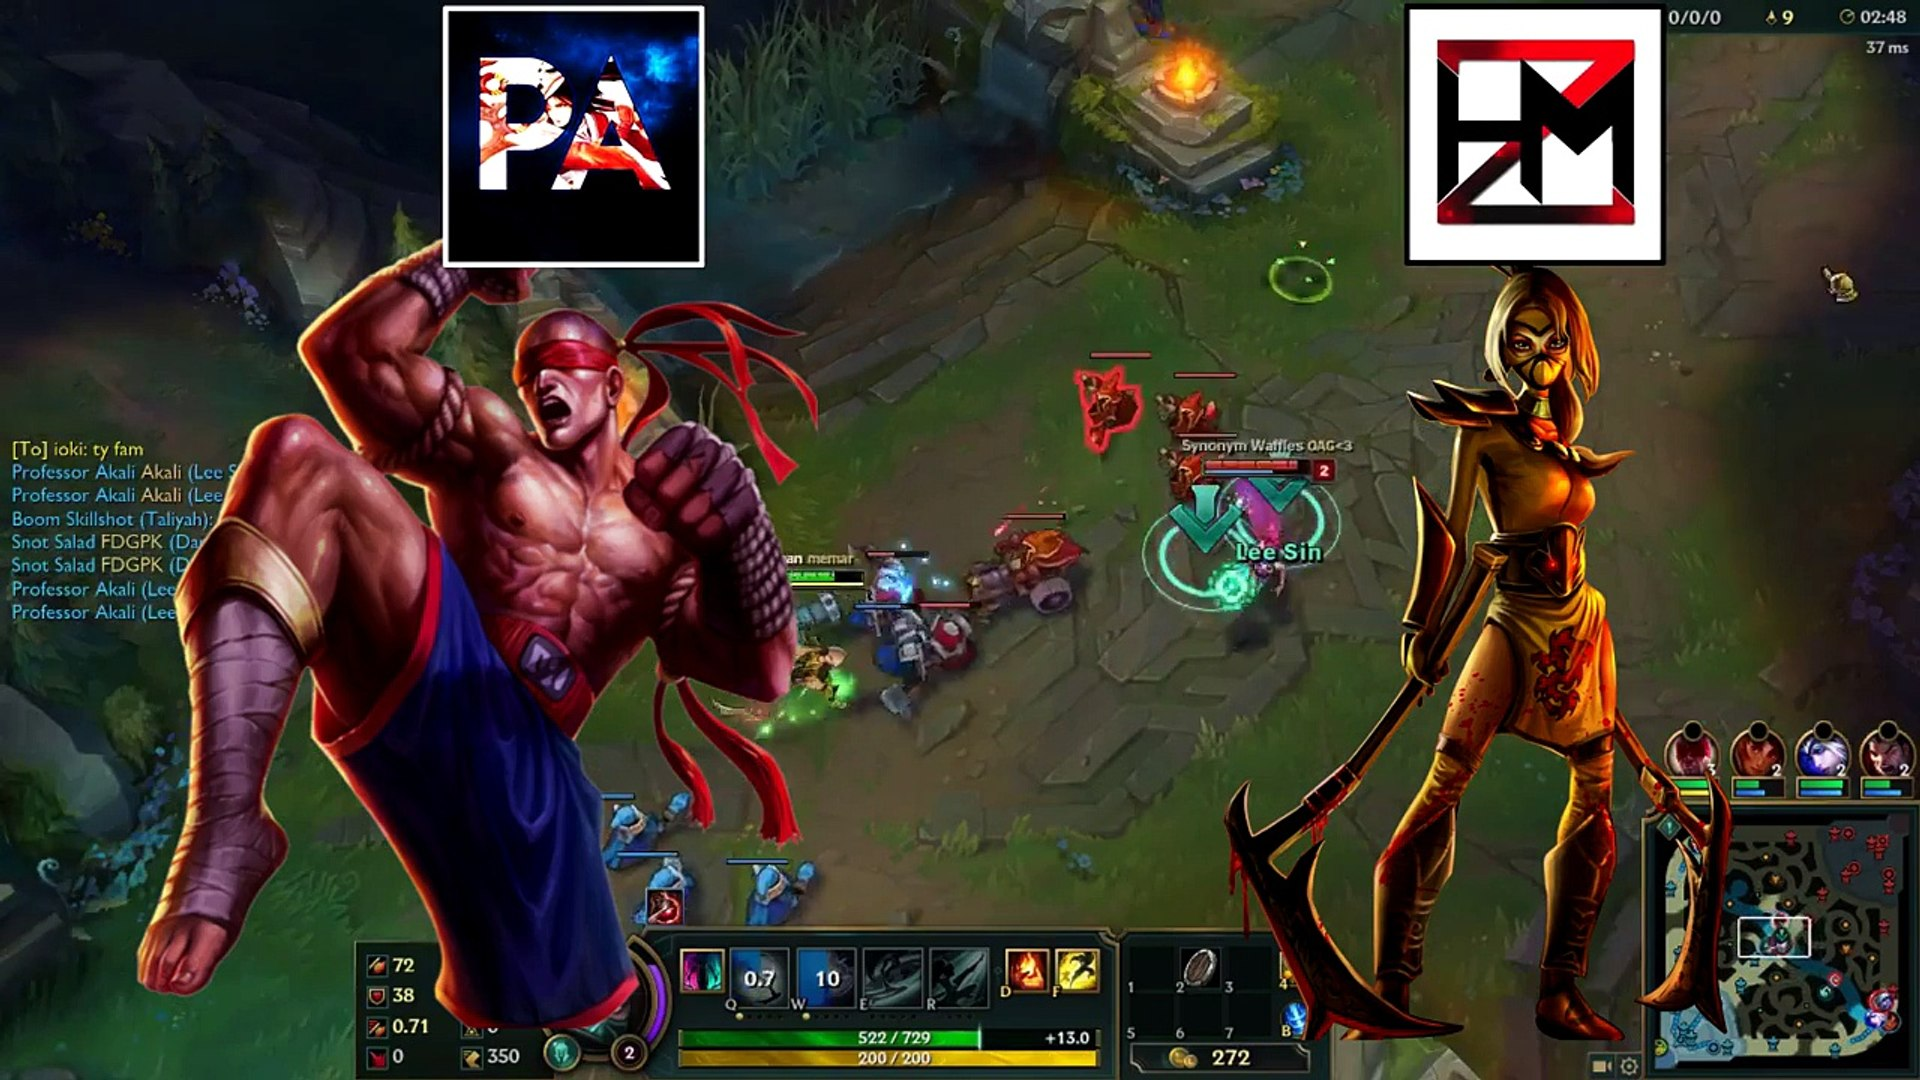 WE SWITCHED MAINS | Heizman Akali and Professor Lee Sin OP League of Legends